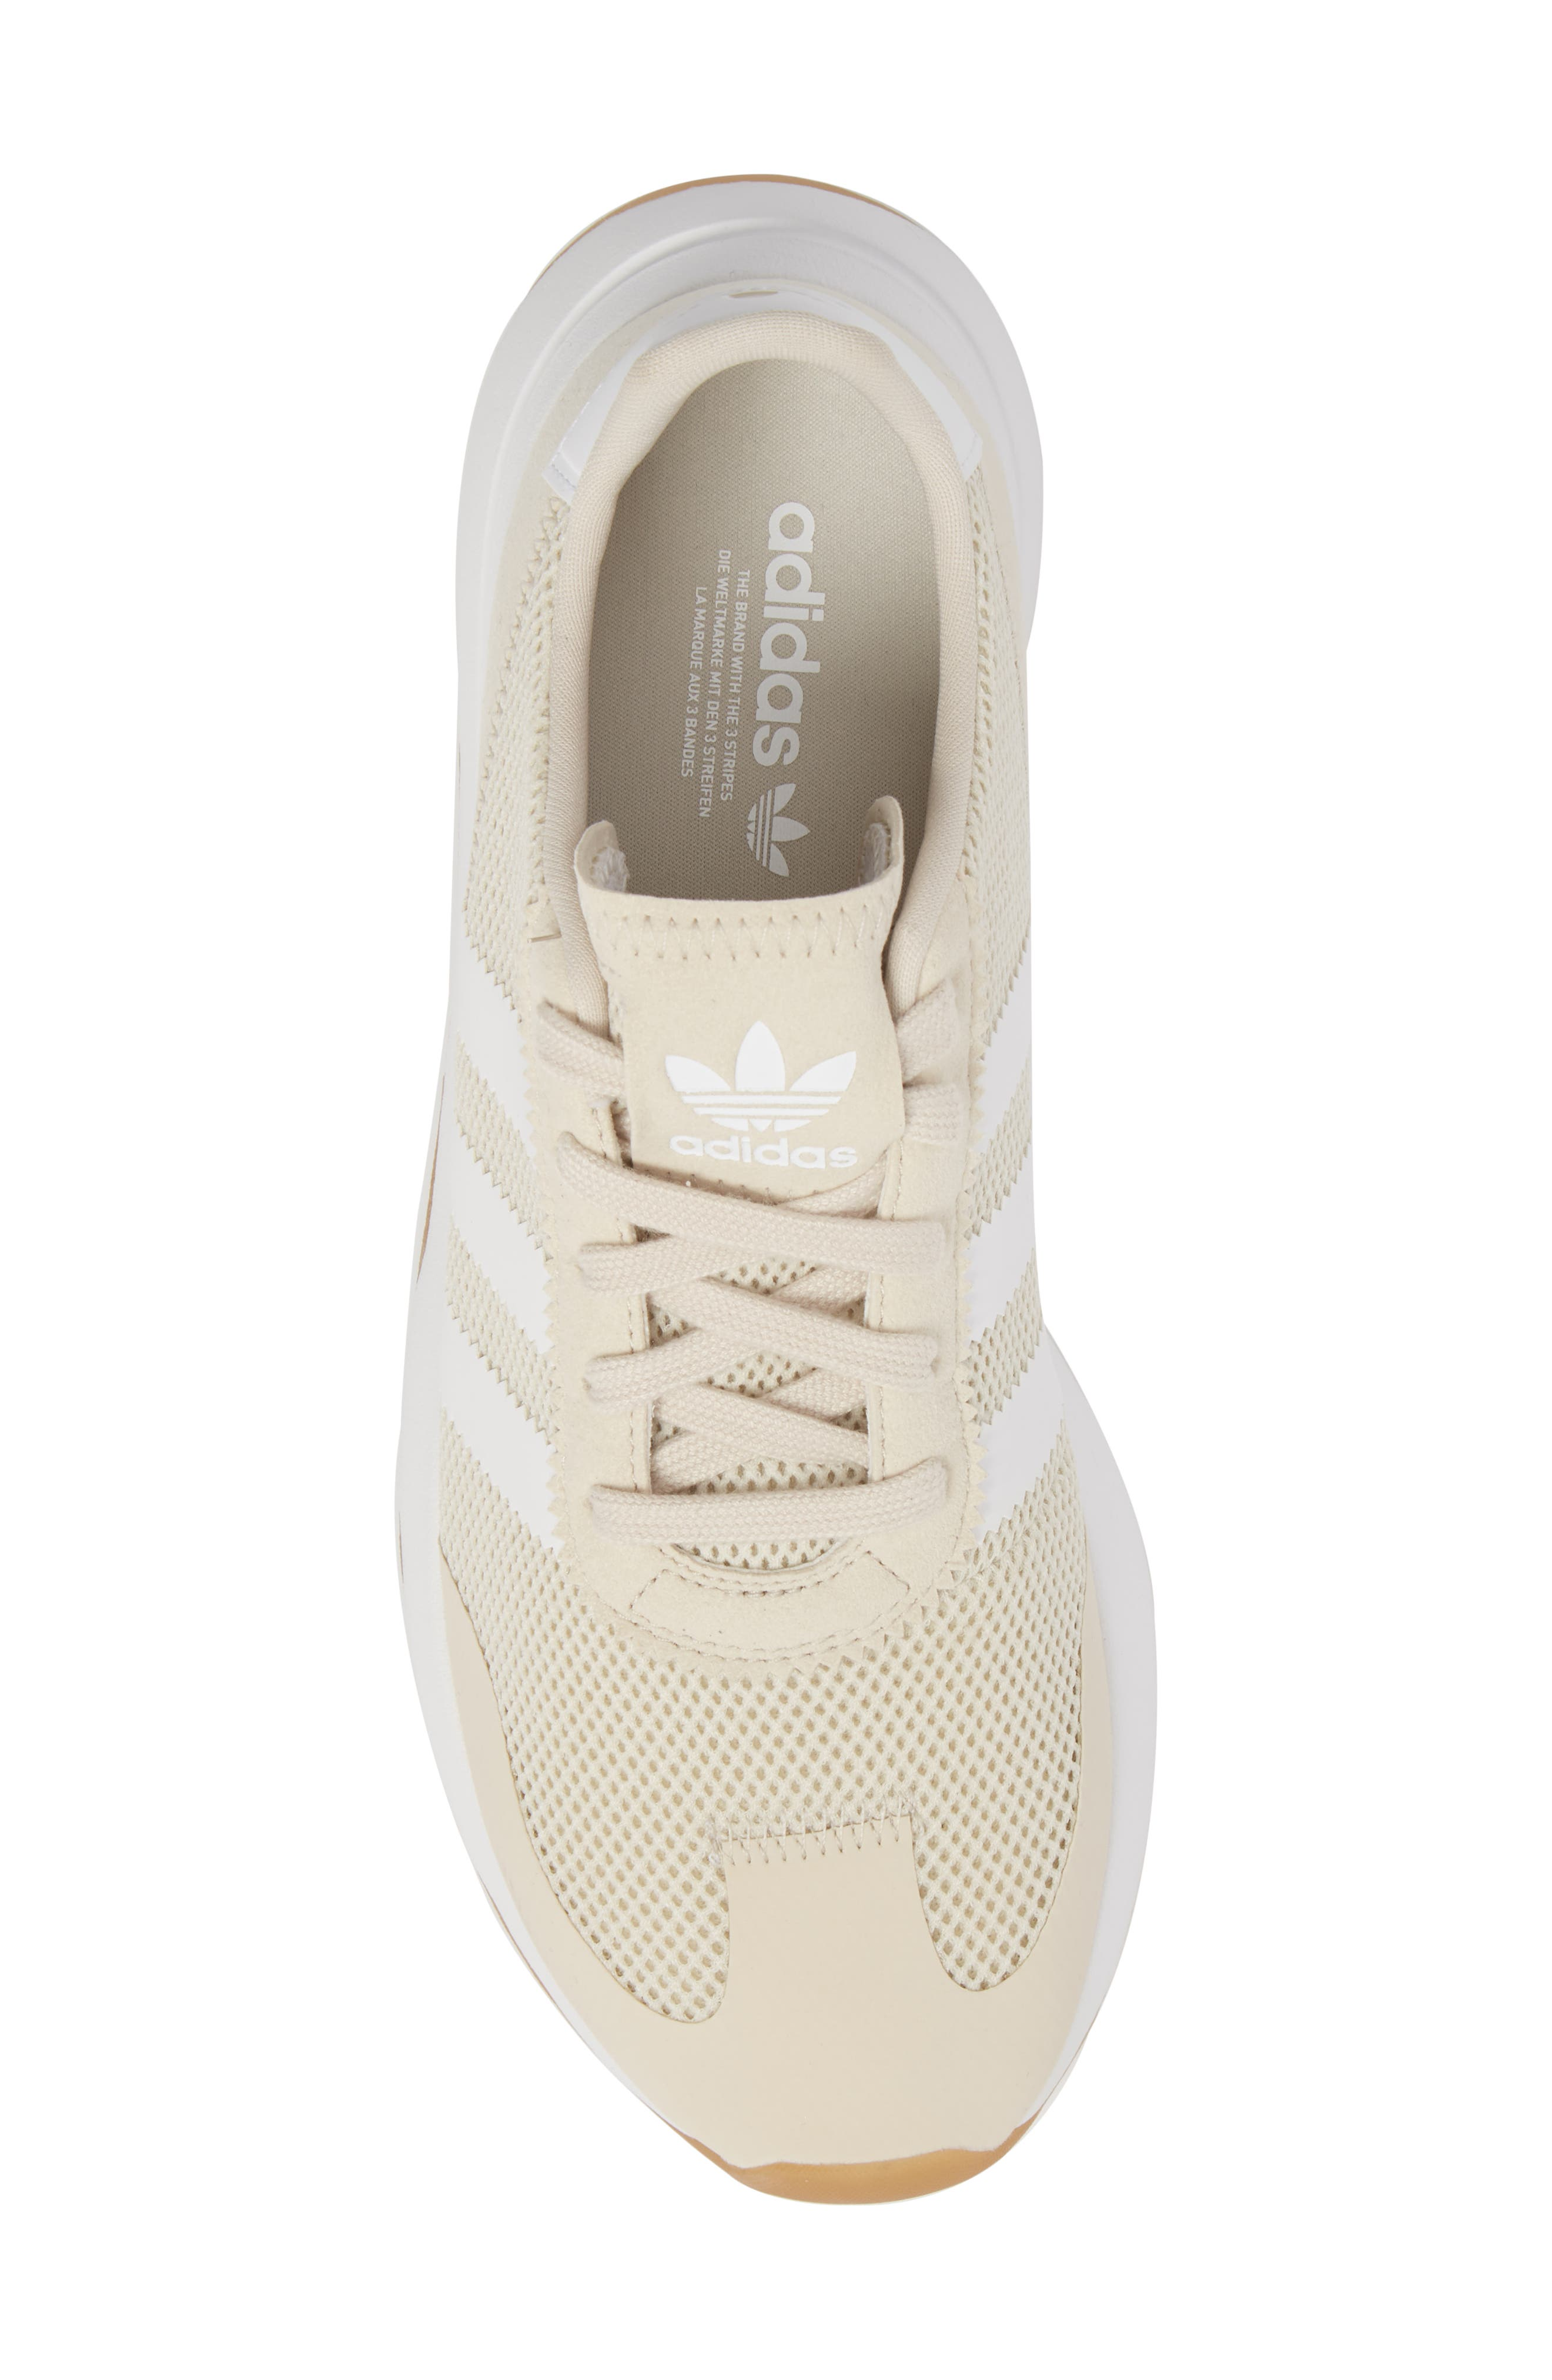 Flashback Sneaker,                             Alternate thumbnail 5, color,                             Clear Brown/ Brown/ White